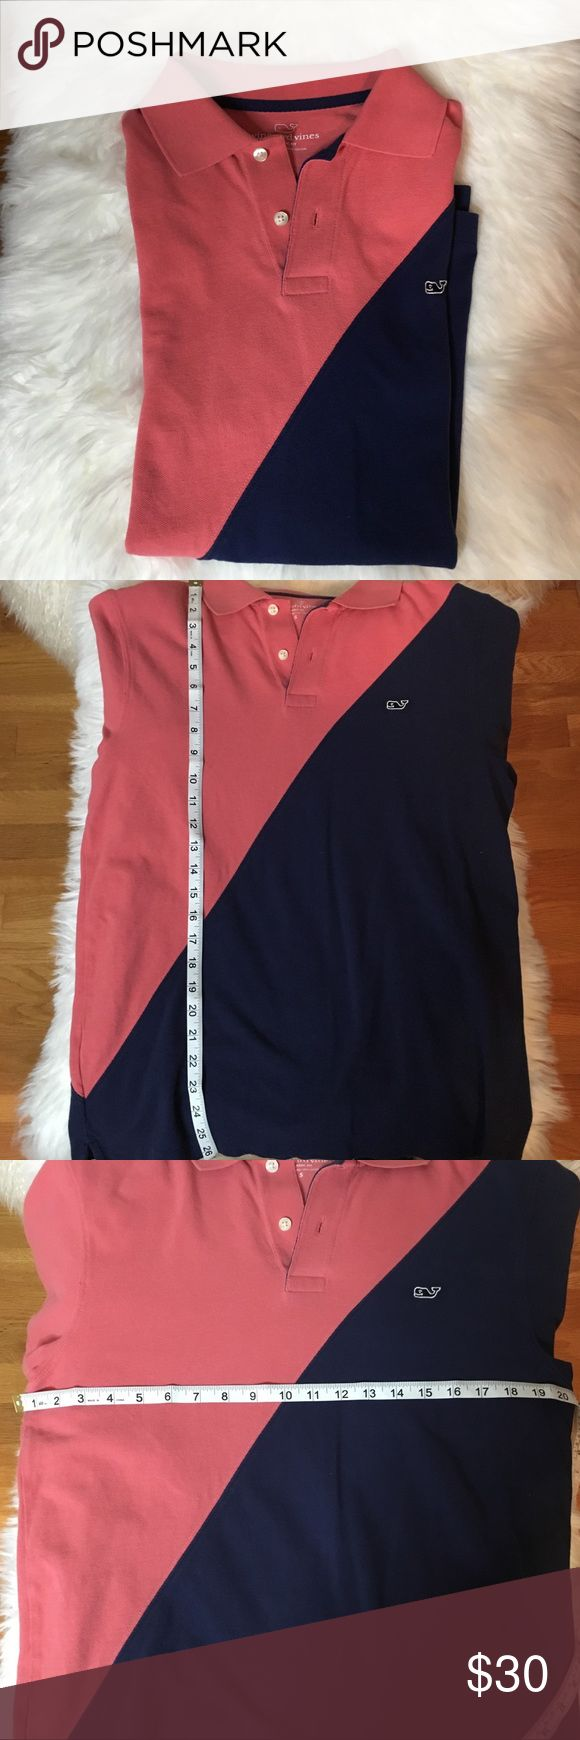 Vineyard Vines Men's color block polo Small Men's Vineyard Vines polo shirt salmon (pink) and blue color block. This shirt is in great preowned condition. Vineyard Vines Shirts Polos